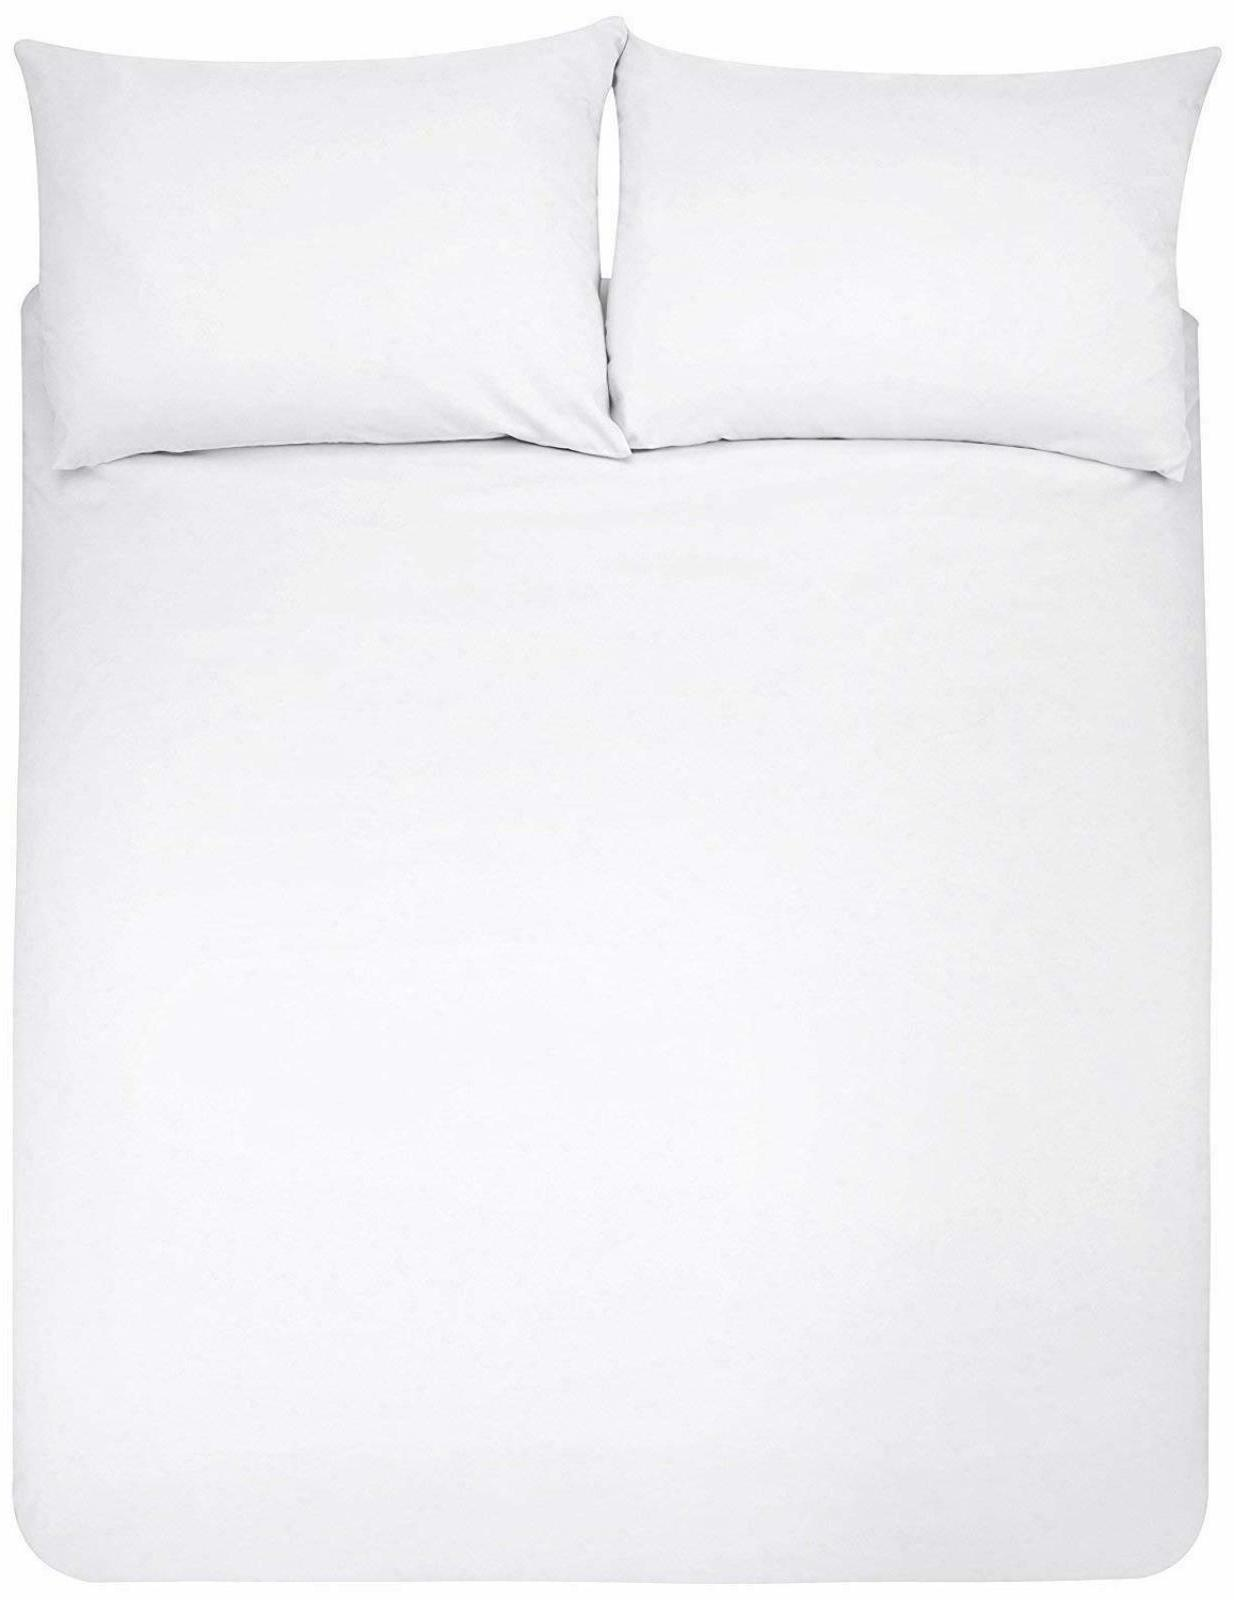 King Size Duvet Cover Set Zip Water Resistant Spill Protecto